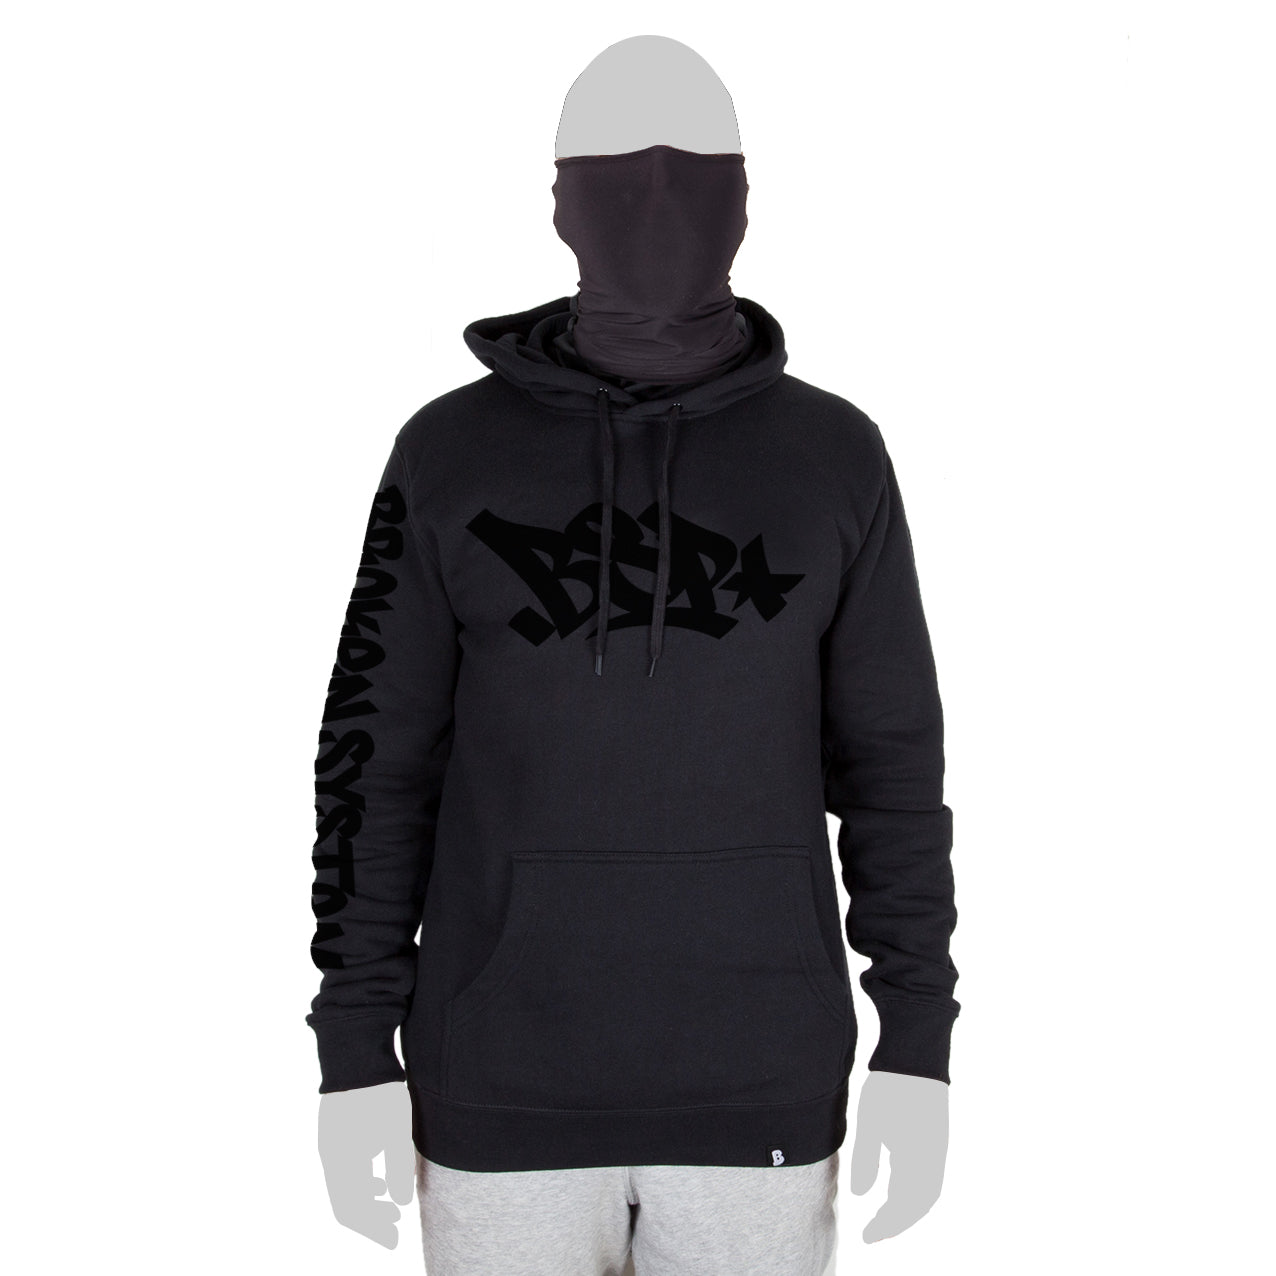 Hoodie with built in face mask